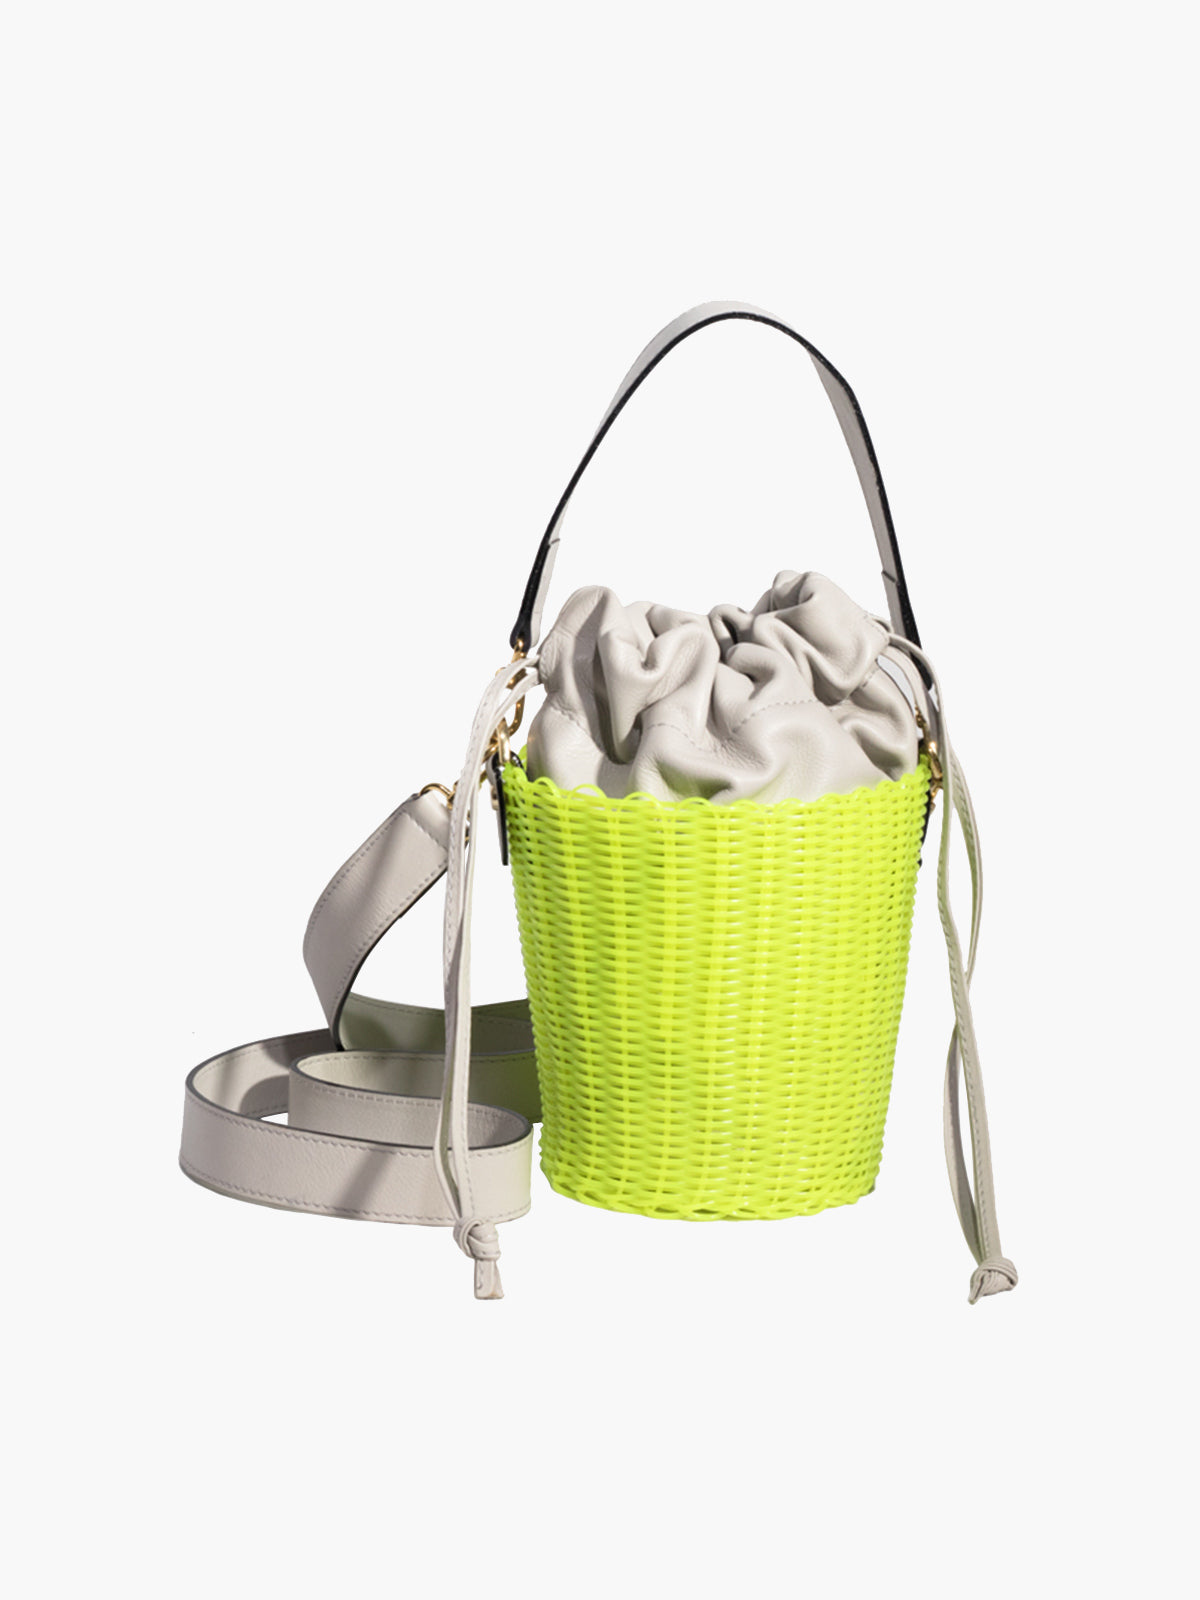 Woven Bucket Bag | Neon Yellow Woven Bucket Bag | Neon Yellow